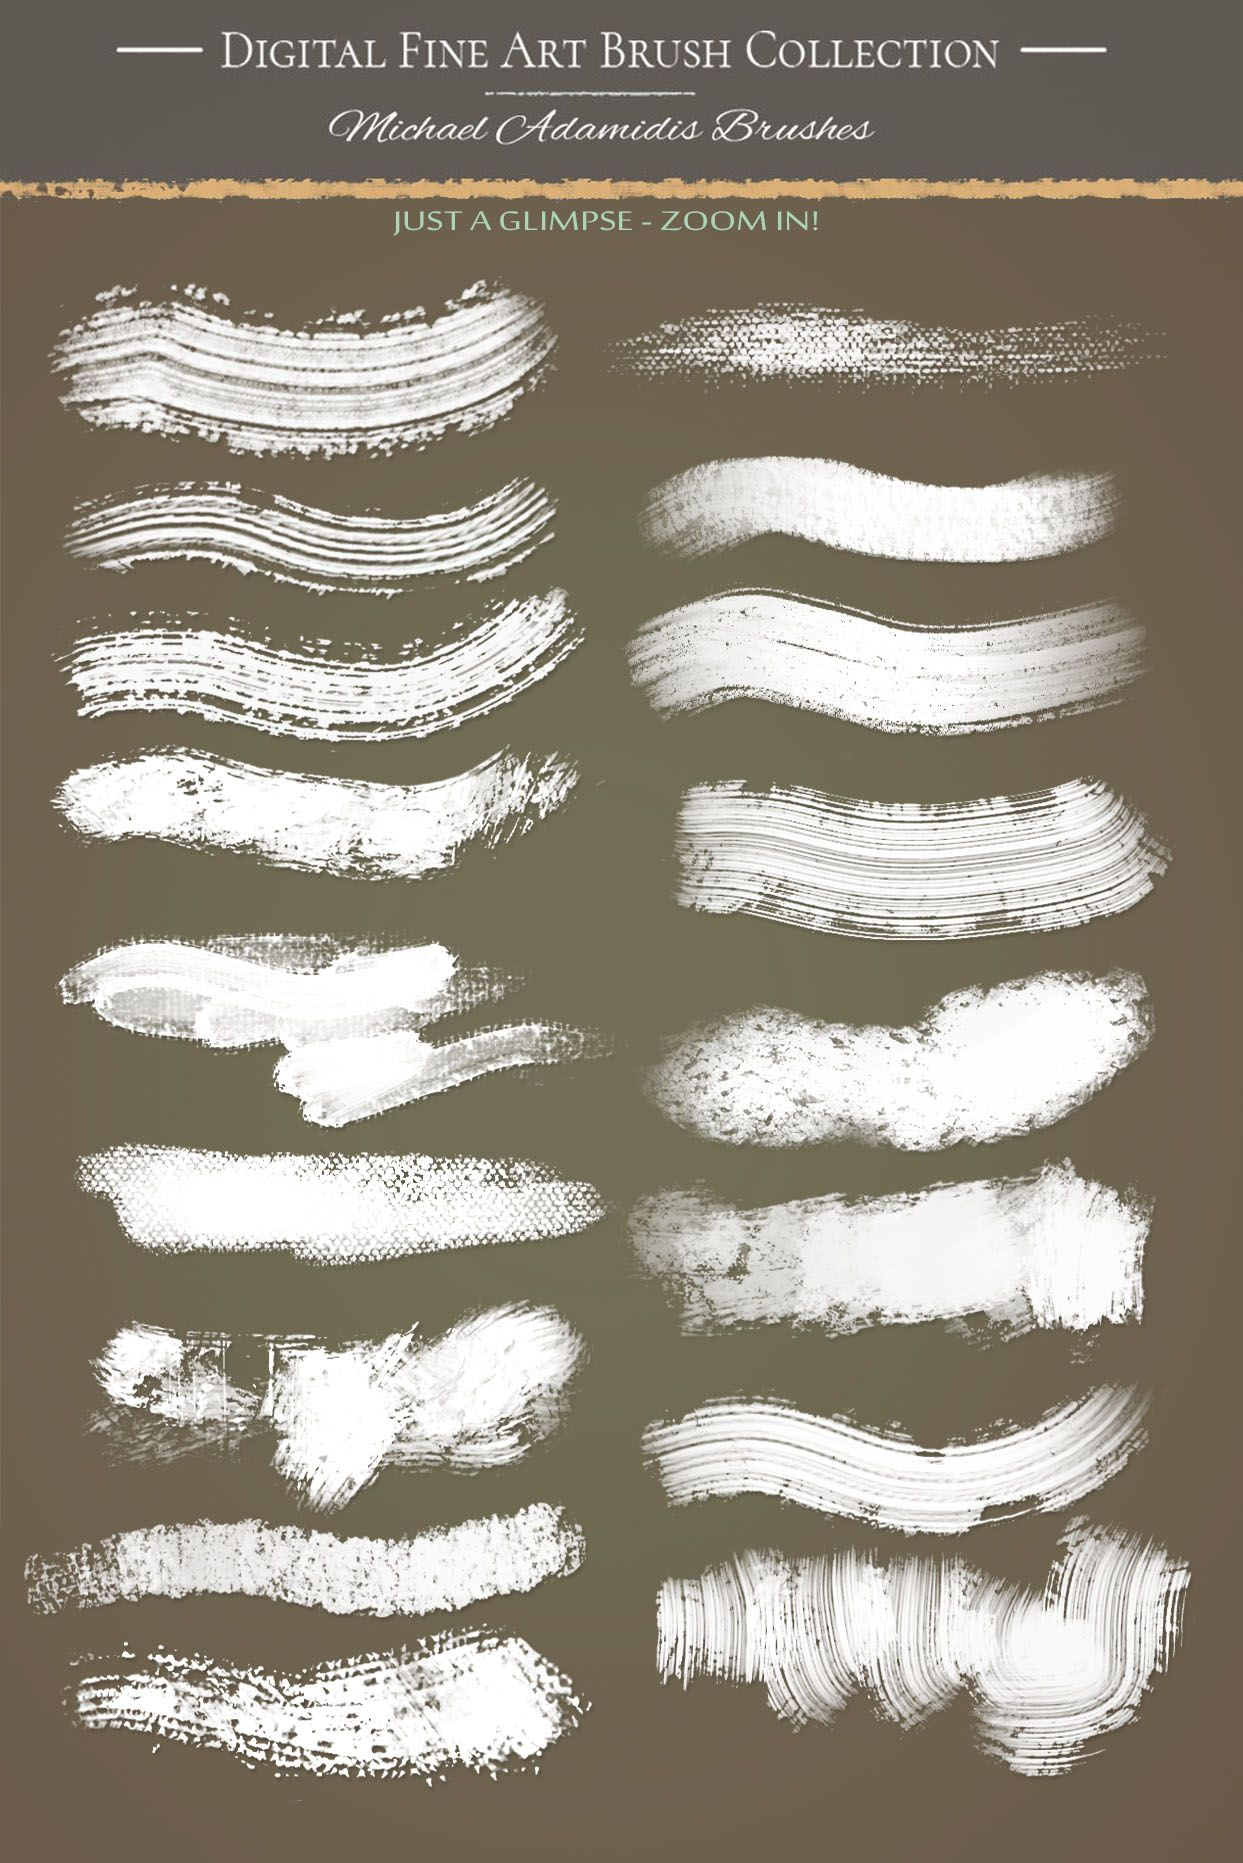 Photoshop Brushes For Painting Oil Painting Brushes For Digital